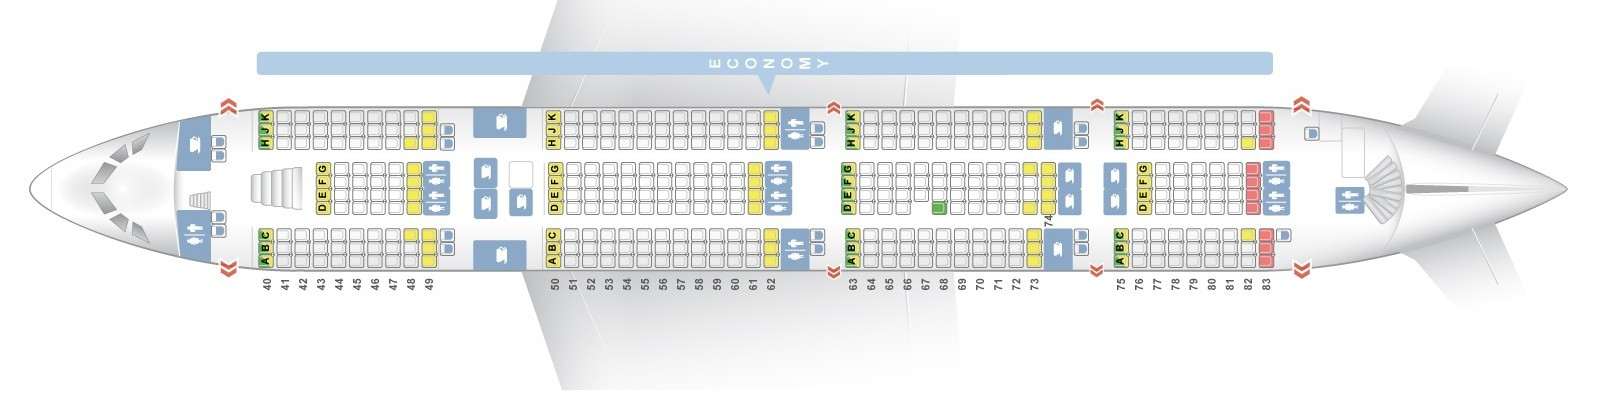 A380 800 Seat Map Seat map Airbus A380 800 Qatar Airways. Best seats in the plane